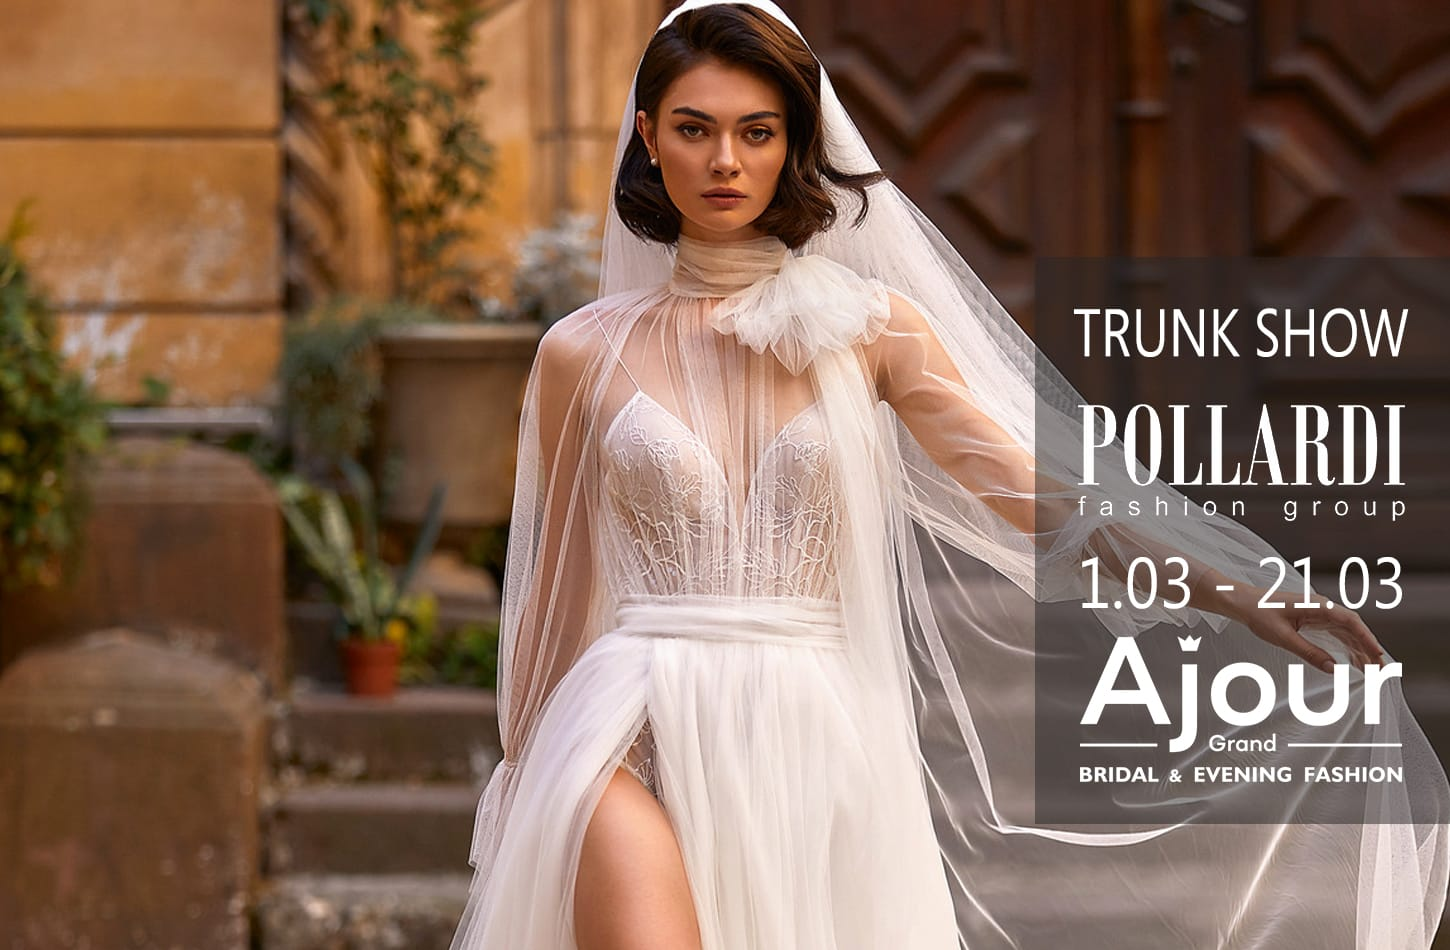 Trunk Show групи брендів Pollardi Fashion Group в салоні Гранд Ажур, з 1.03.21 до 21.03.21